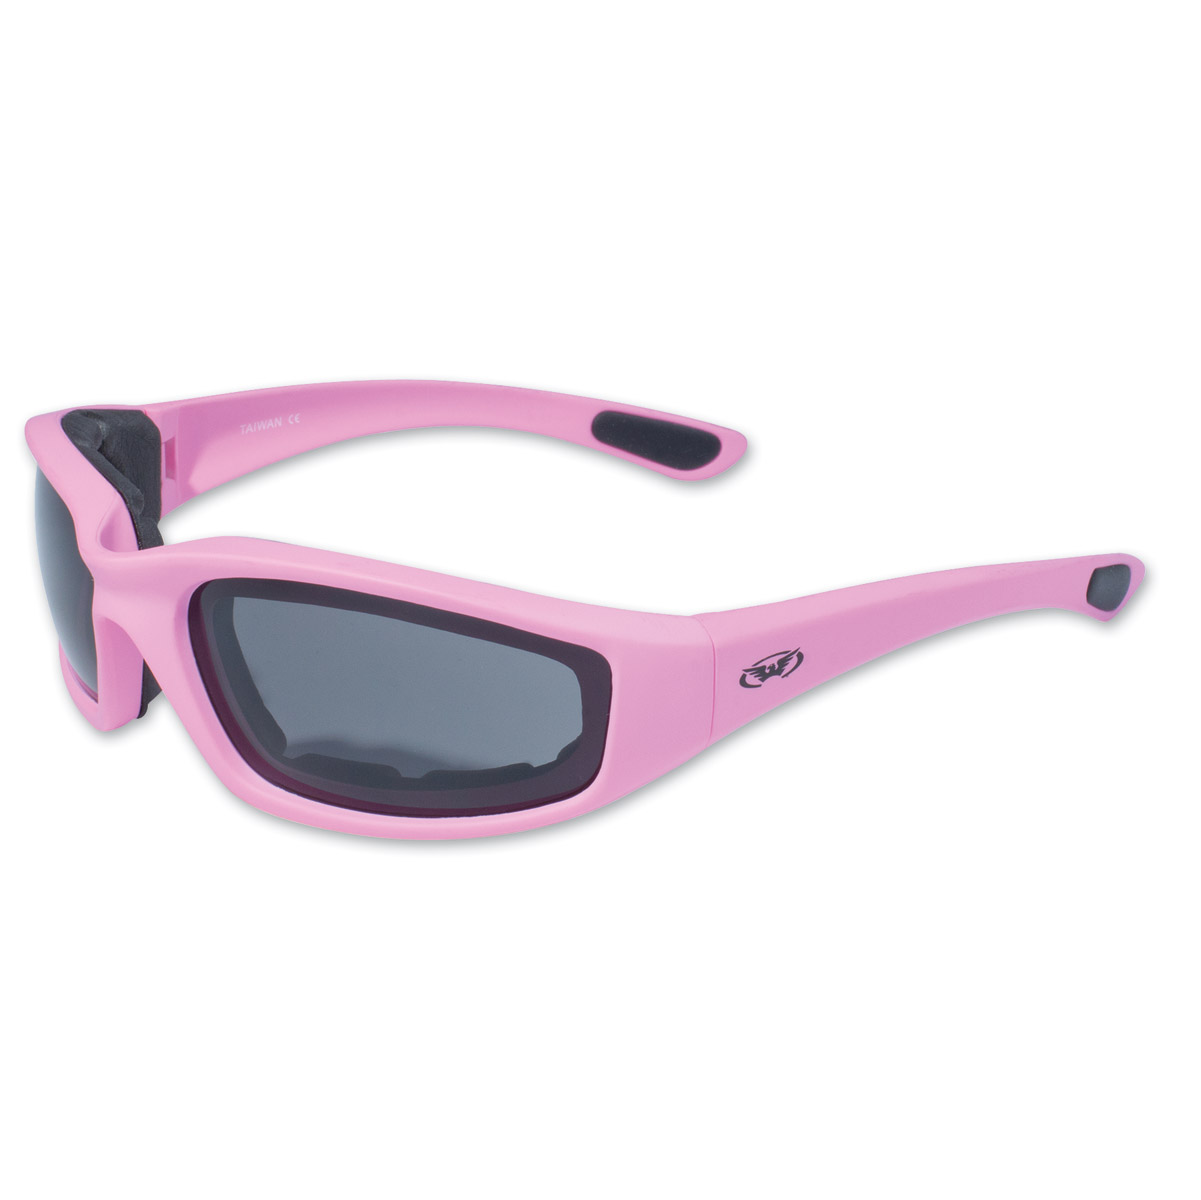 Global Vision Eyewear Fight Back 1 Pink Sunglasses with Smoke Lens